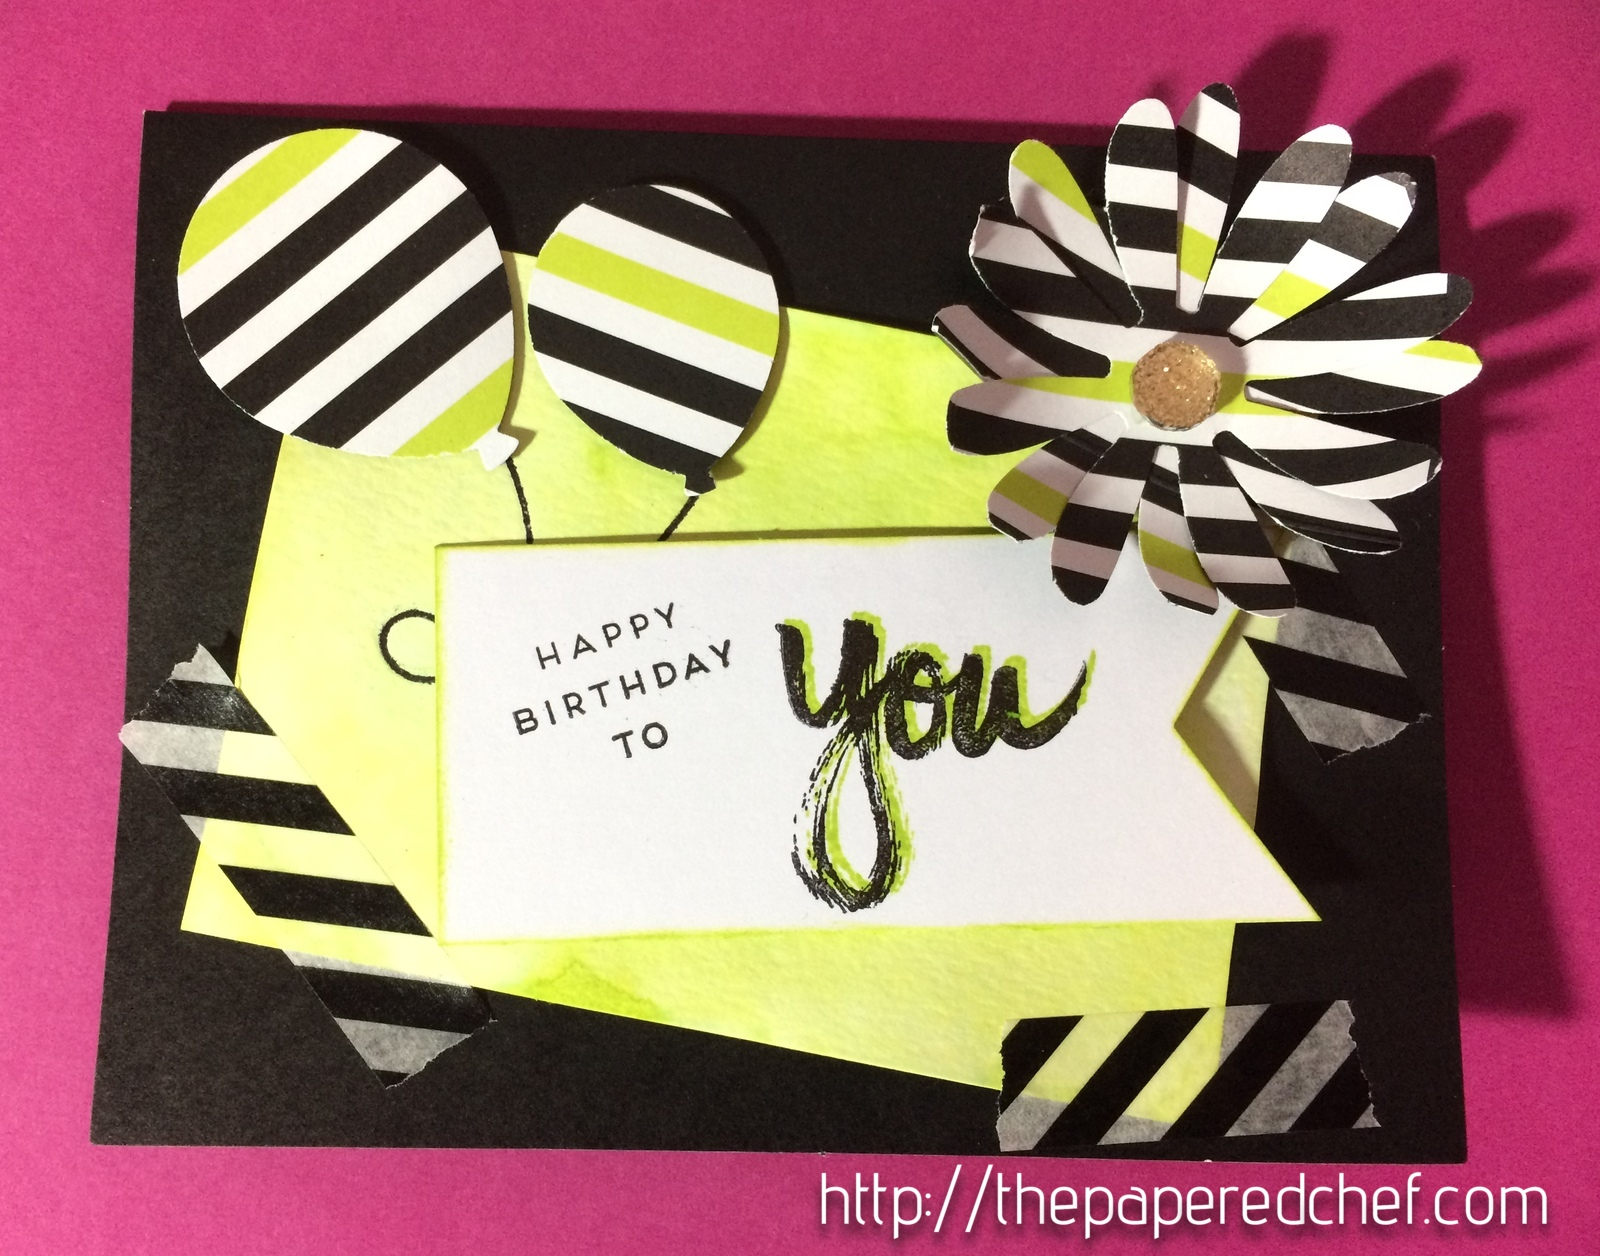 It's a Sara Thing - Alternative Paper Pumpkin card with Daisy and Balloons